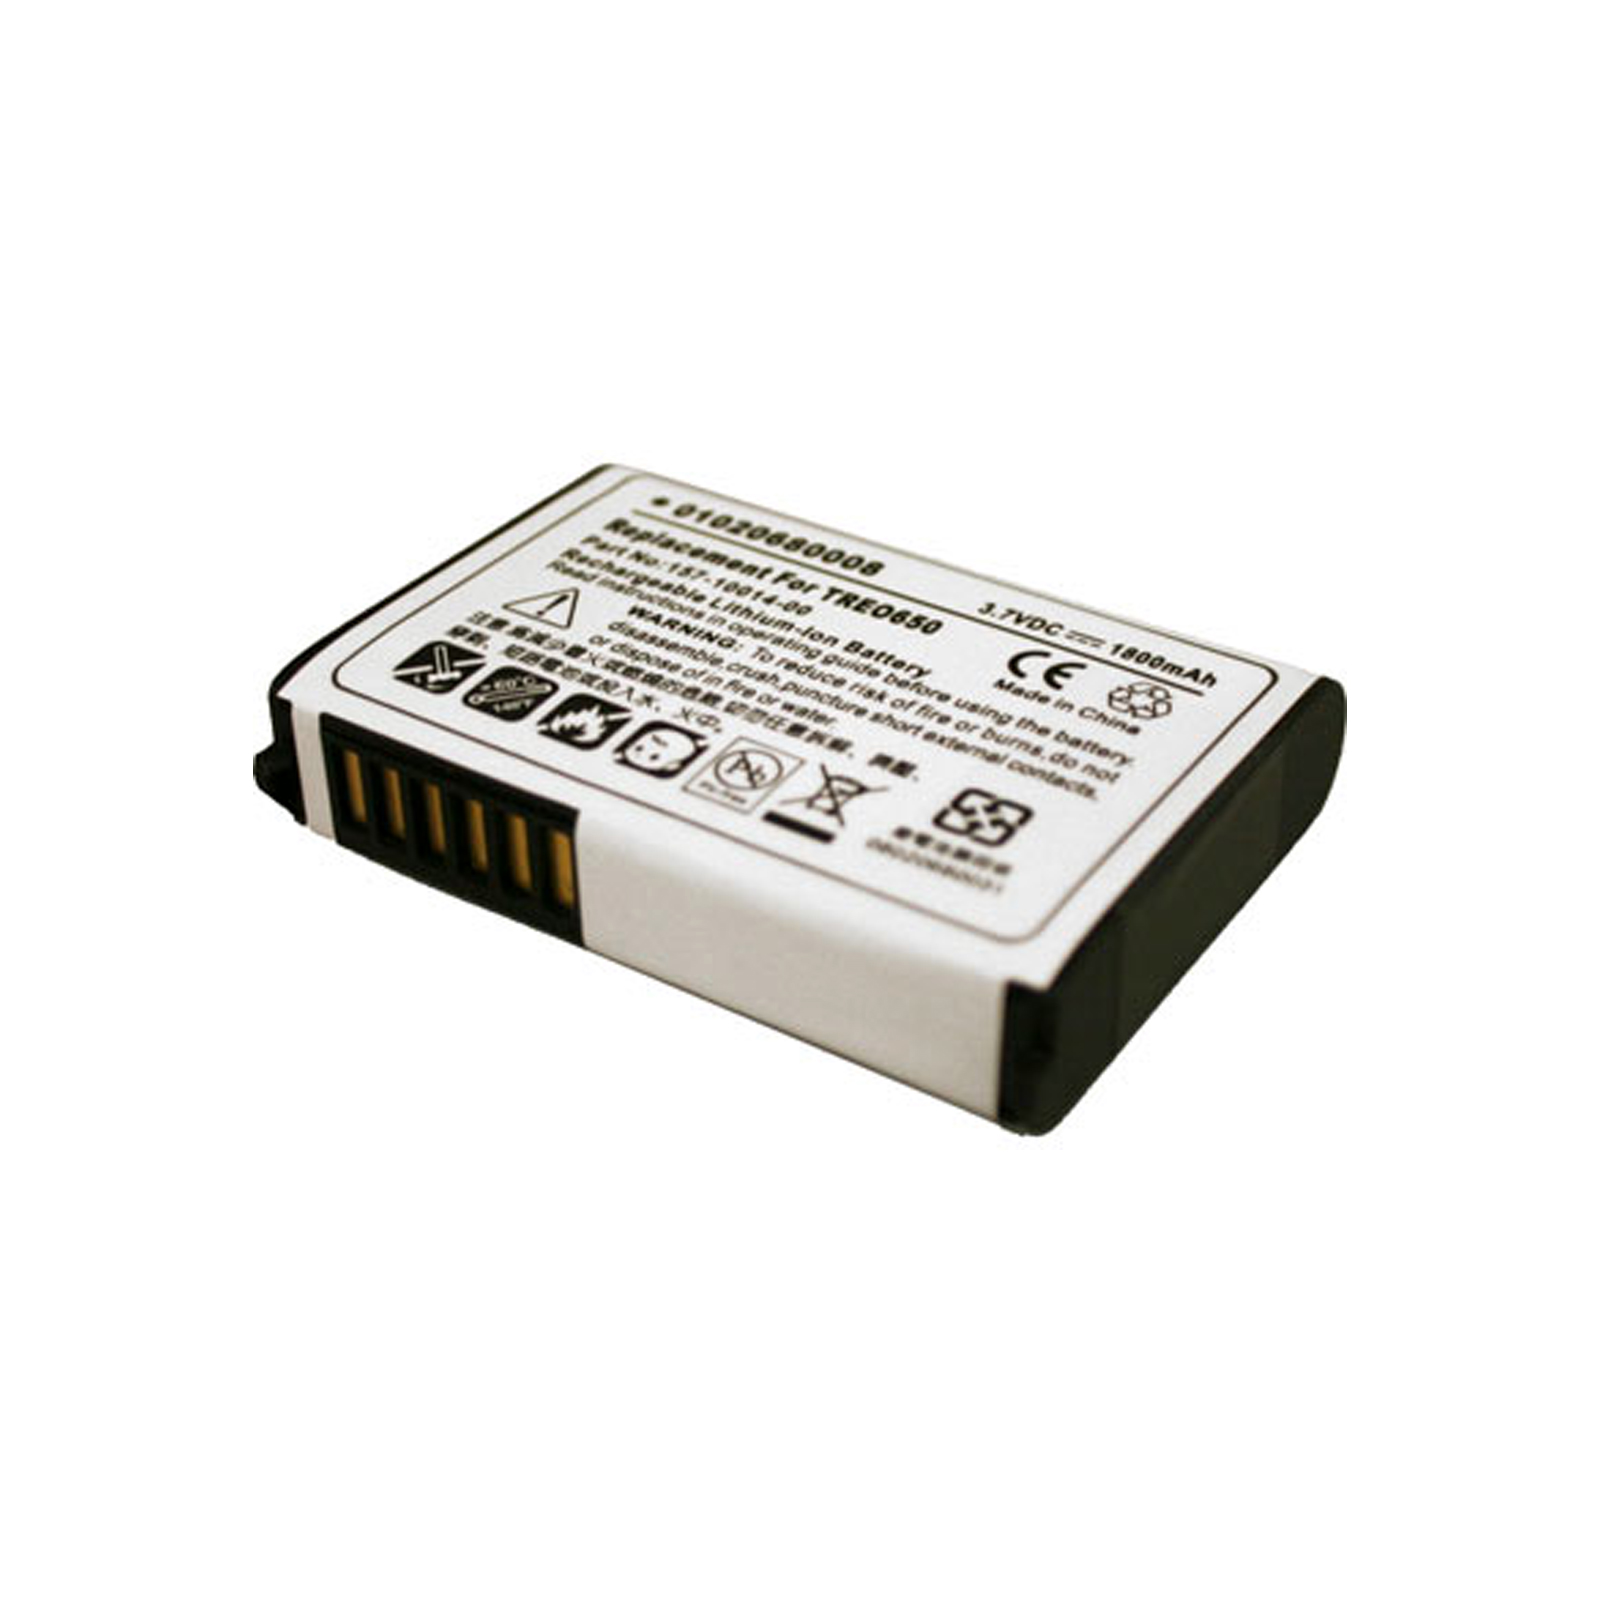 Battery Fits Palm Treo 650 Ace Replaces 3184WW 419735